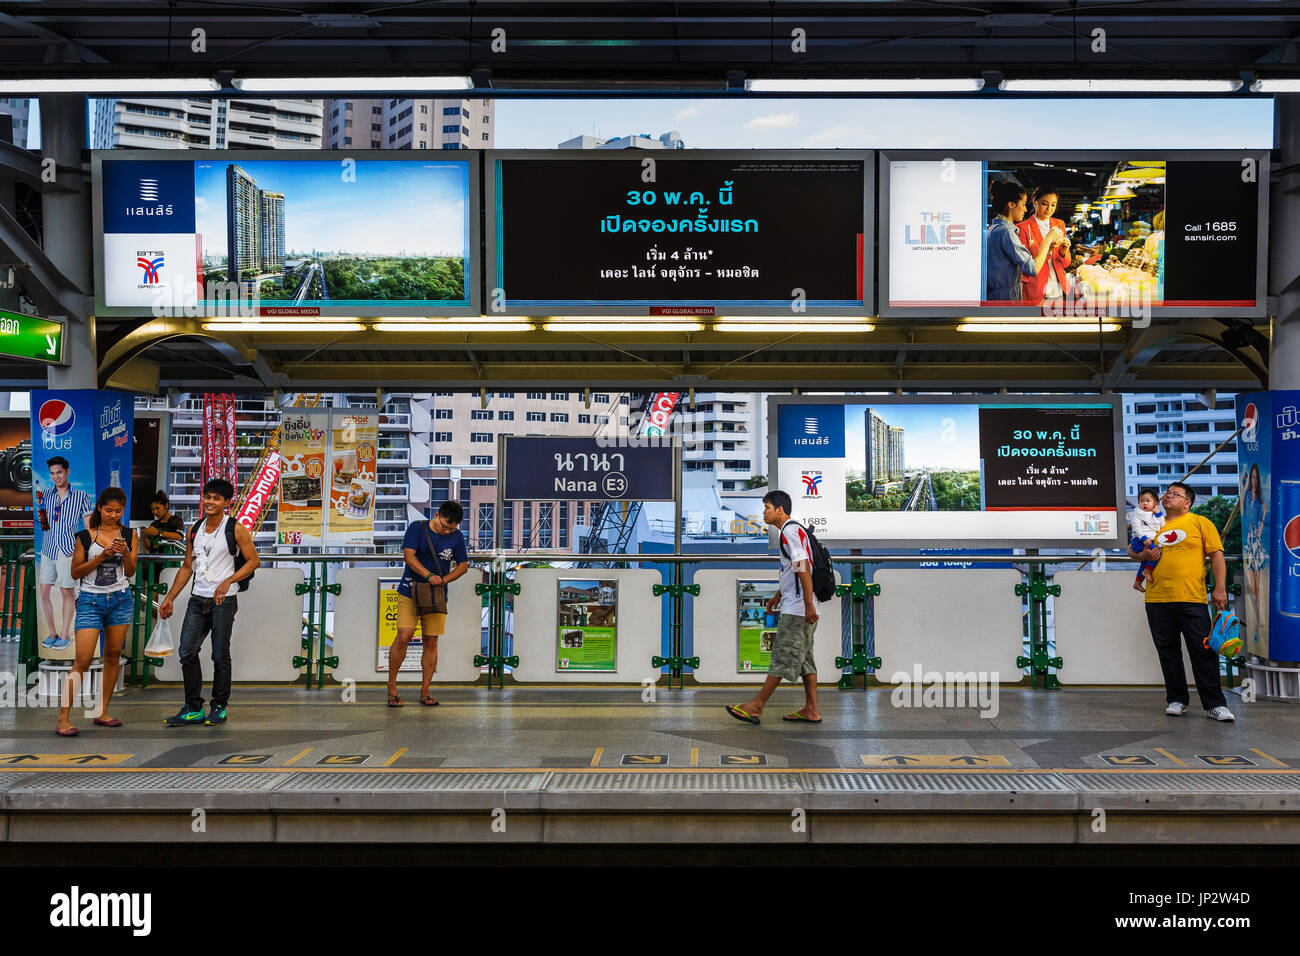 People waiting for the skytrain (BTS on Nana station in Bangkok, Thailand. - Stock Image